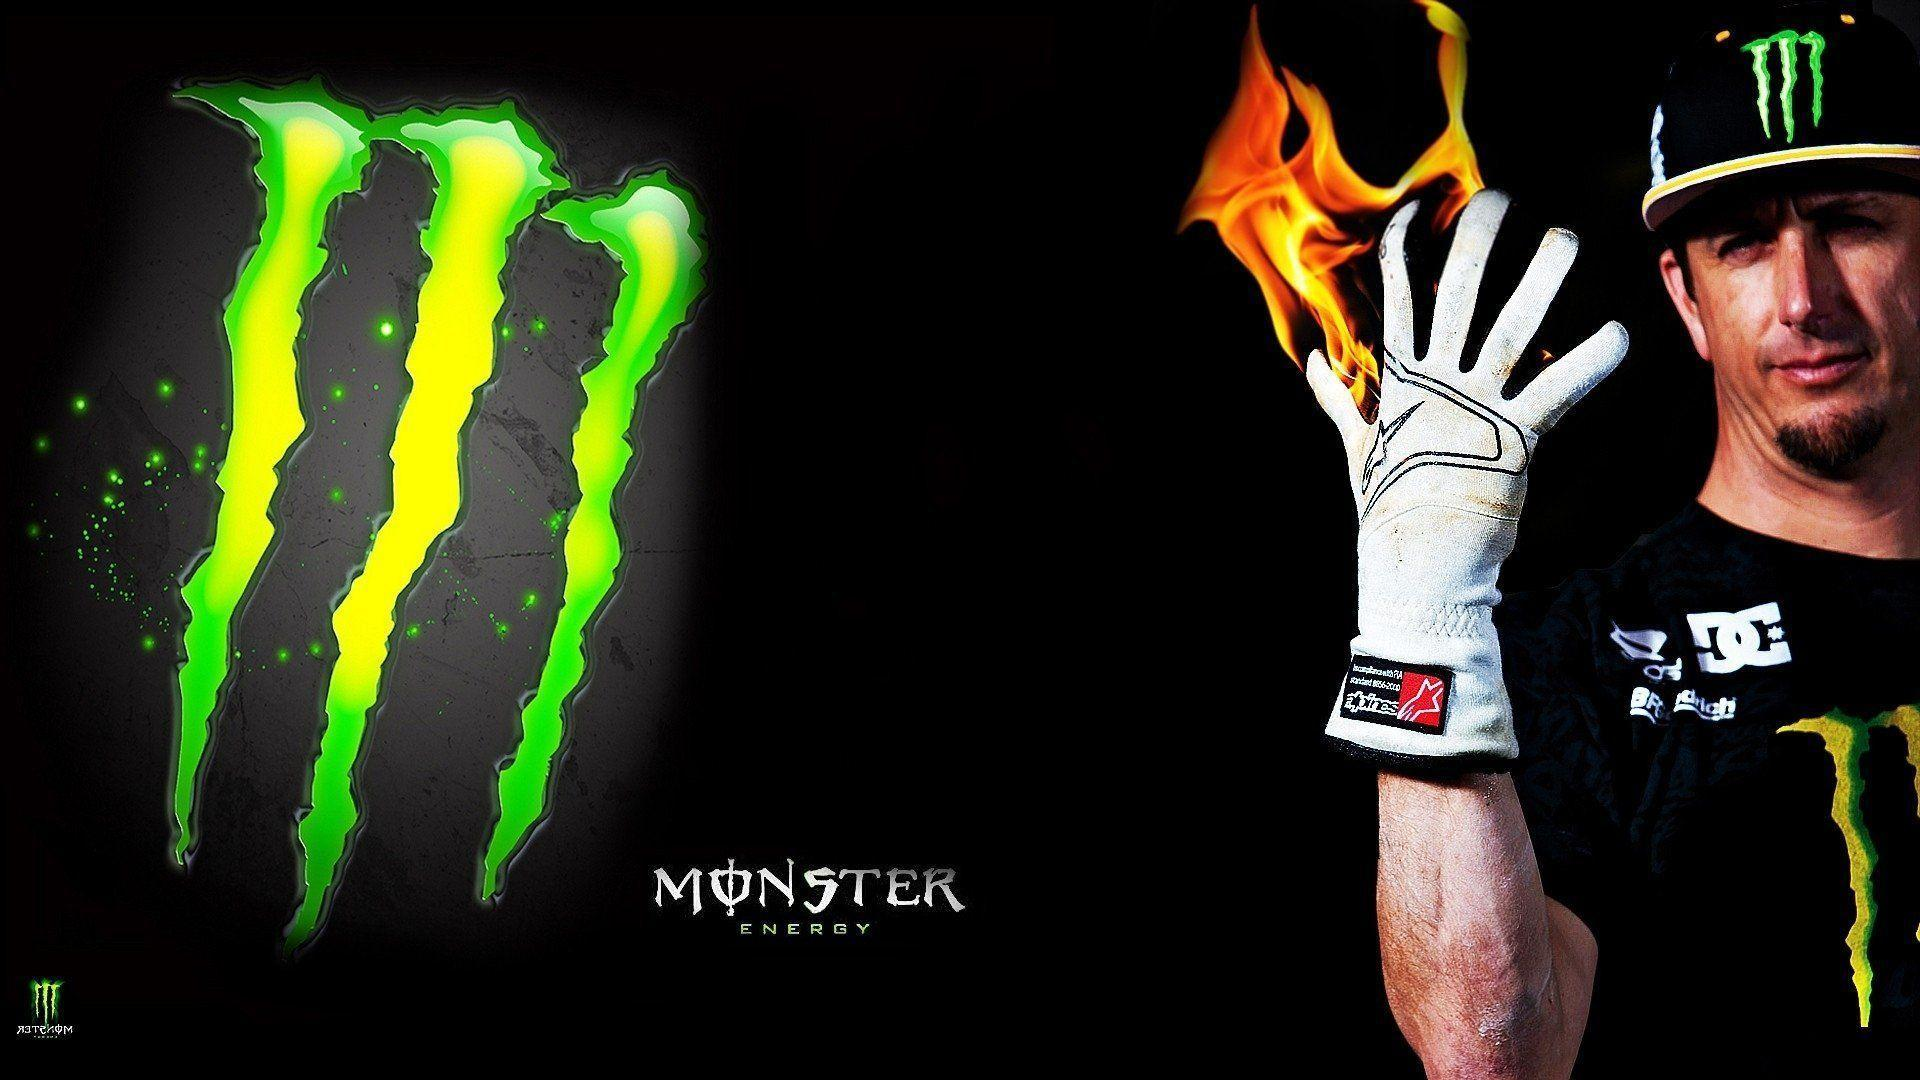 Monster Energy Style wallpapers HD 2016 in Others